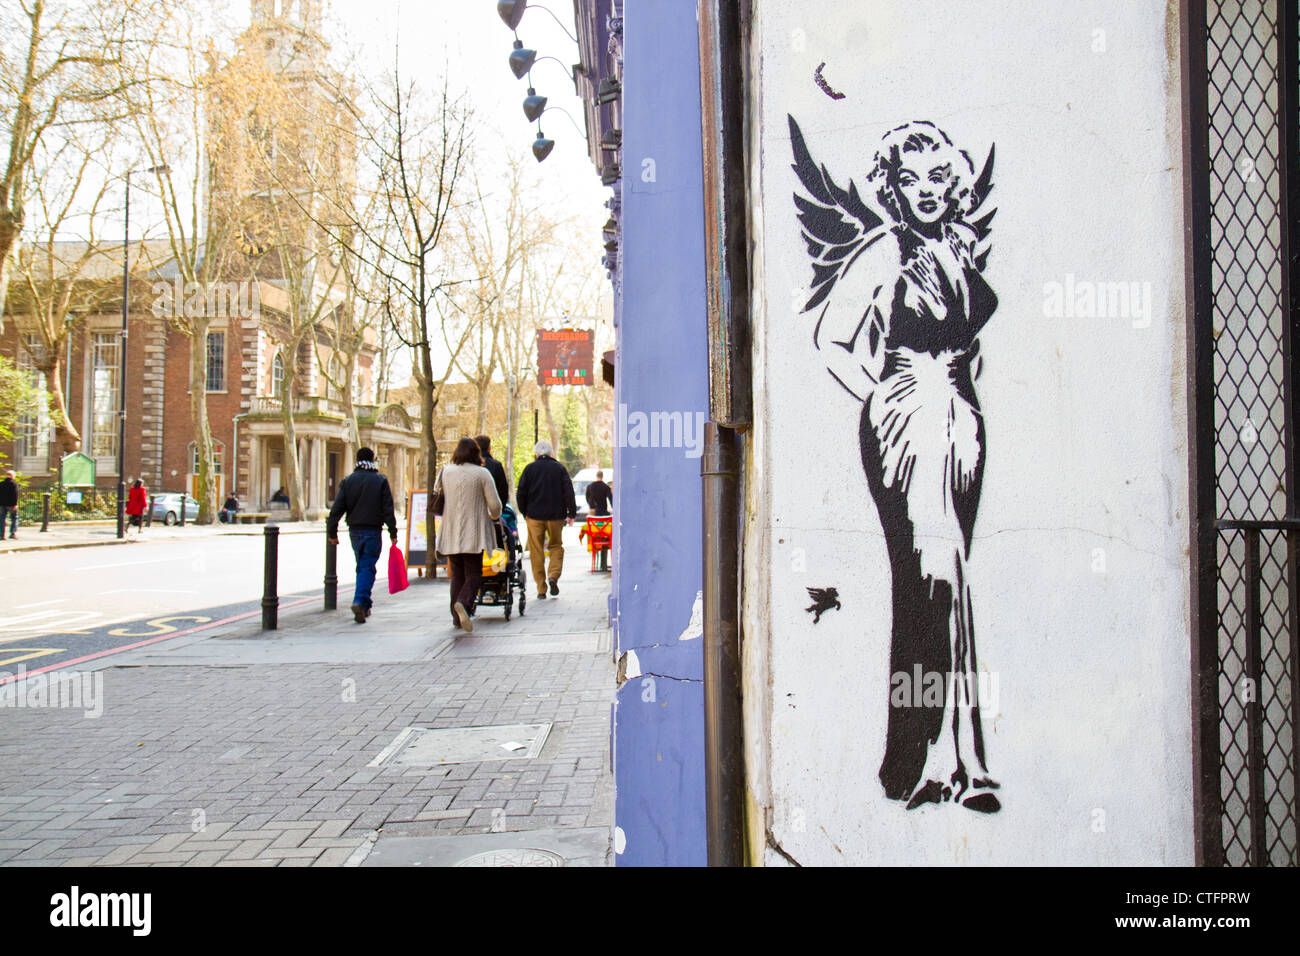 Spray paint stencil by graffiti artist Pegasus in Islington, London depicting Marilyn Monroe with angel wings - Stock Image